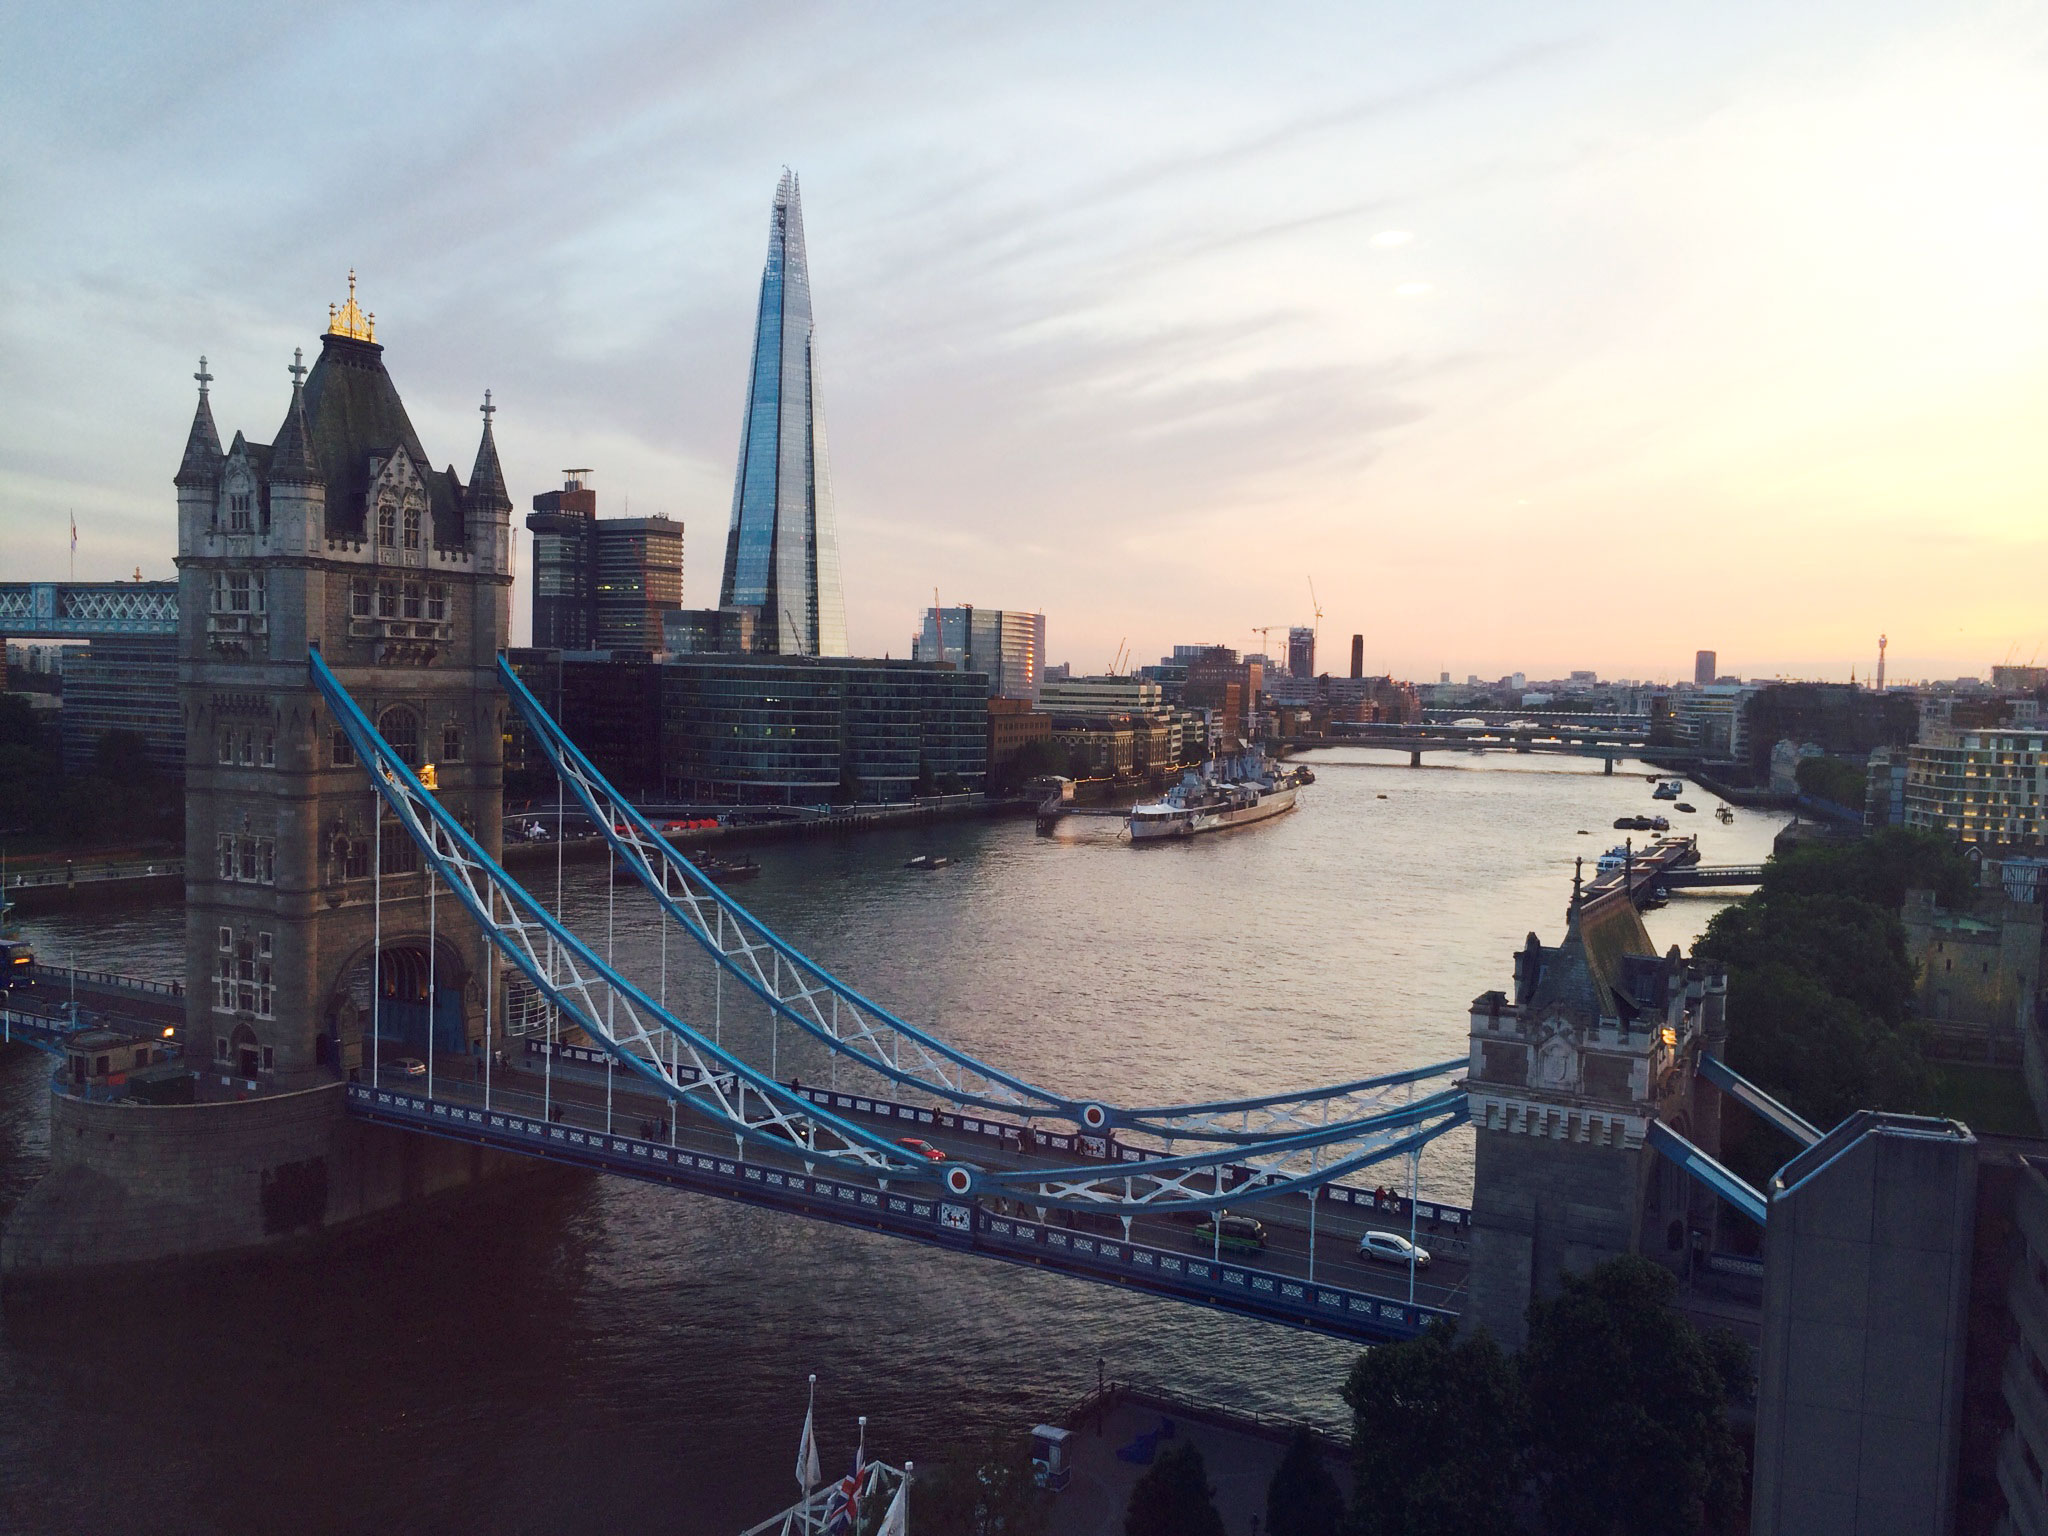 Tower-Bridge-and-Shard-Jenrick